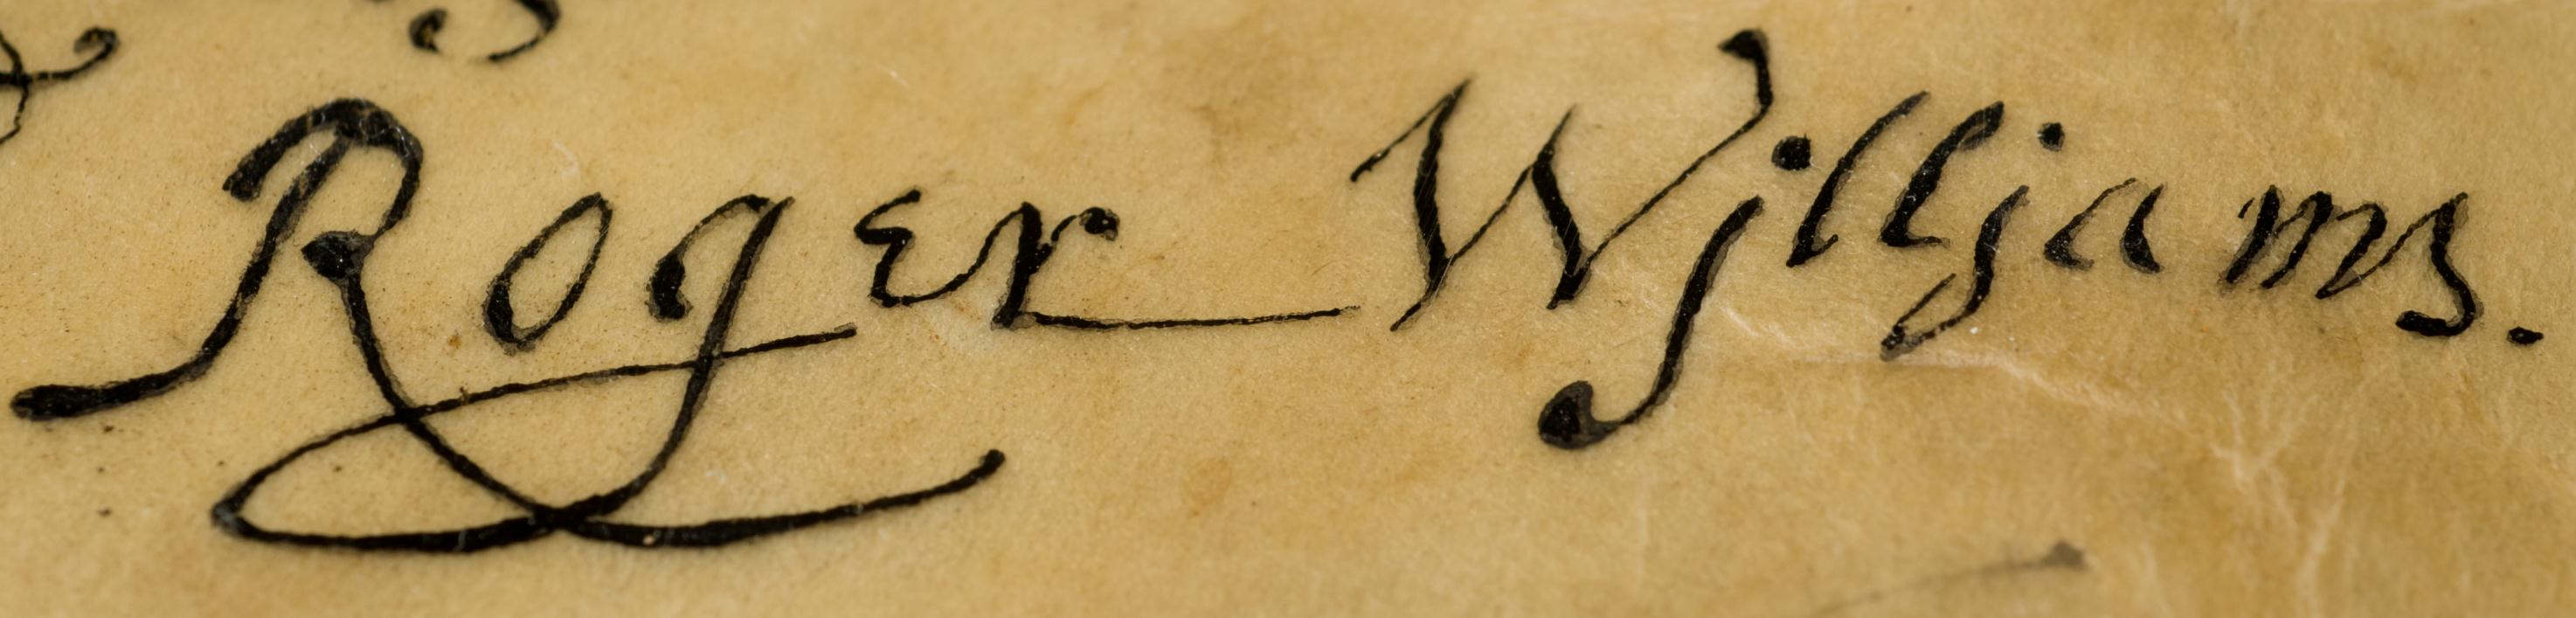 roger williams signature jpgRoger Williams 1636